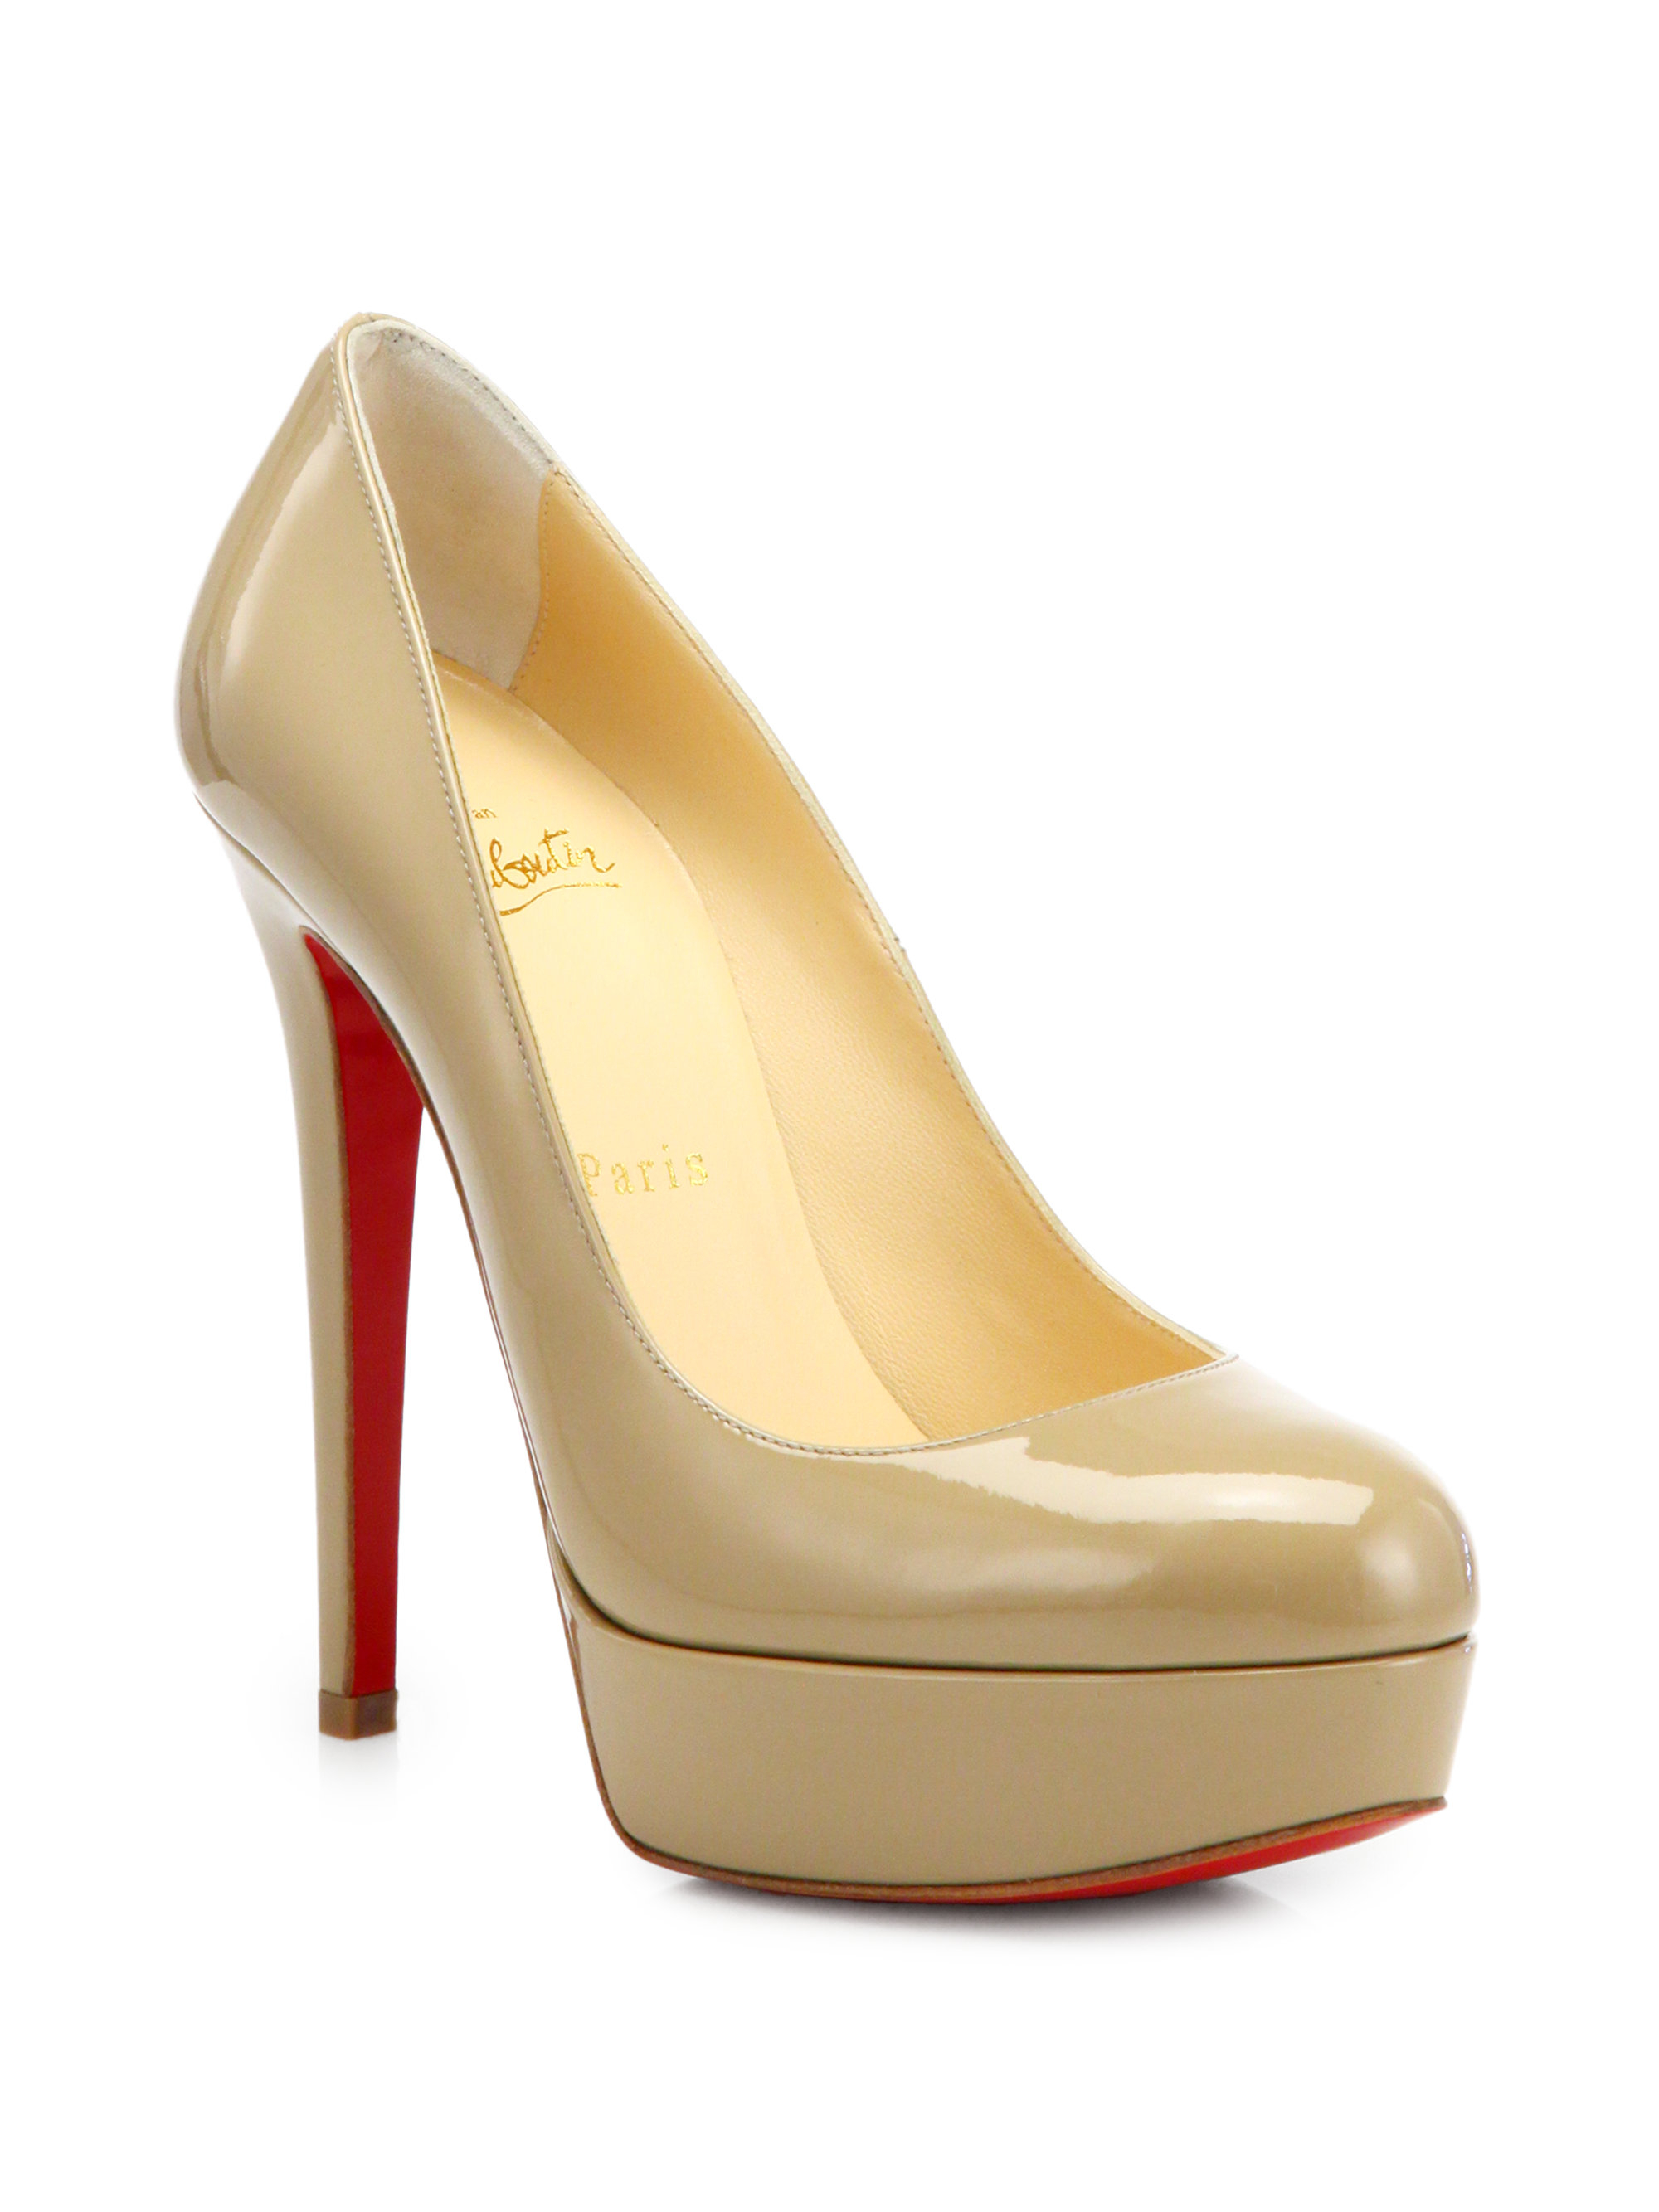 christian louboutin round-toe platform pumps Beige patent leather ...